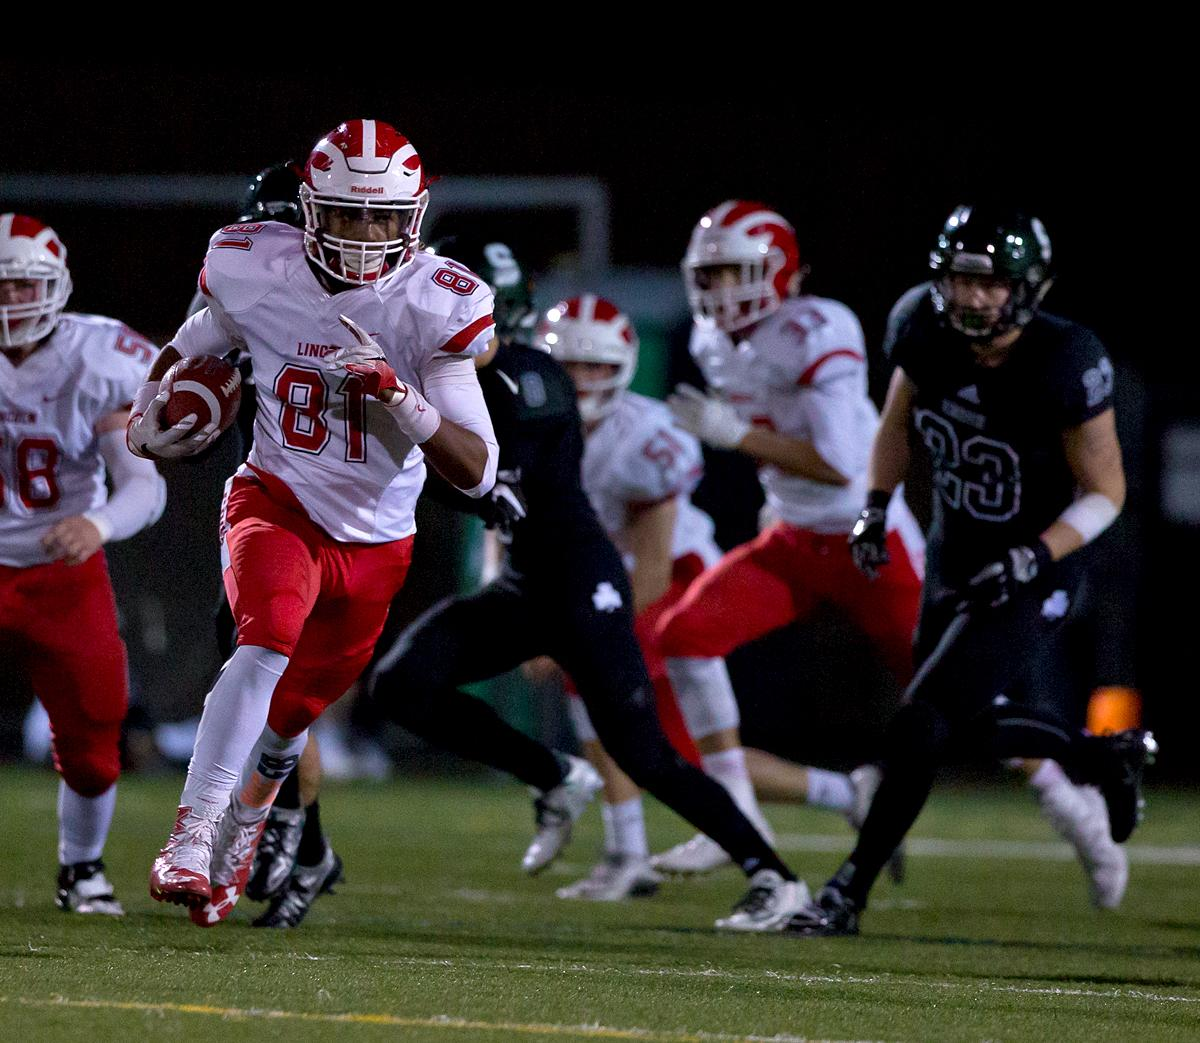 Lincoln wide receiver Phil Rodgers (#81) sprints away from the Sheldon offense after catching a pass. The Sheldon Irish defeated the Lincoln Cardinals 38 to 28 to advance to the quarterfinals of the OSAA 6A playoffs. Photo by Ben Lonergan, Oregon News Lab